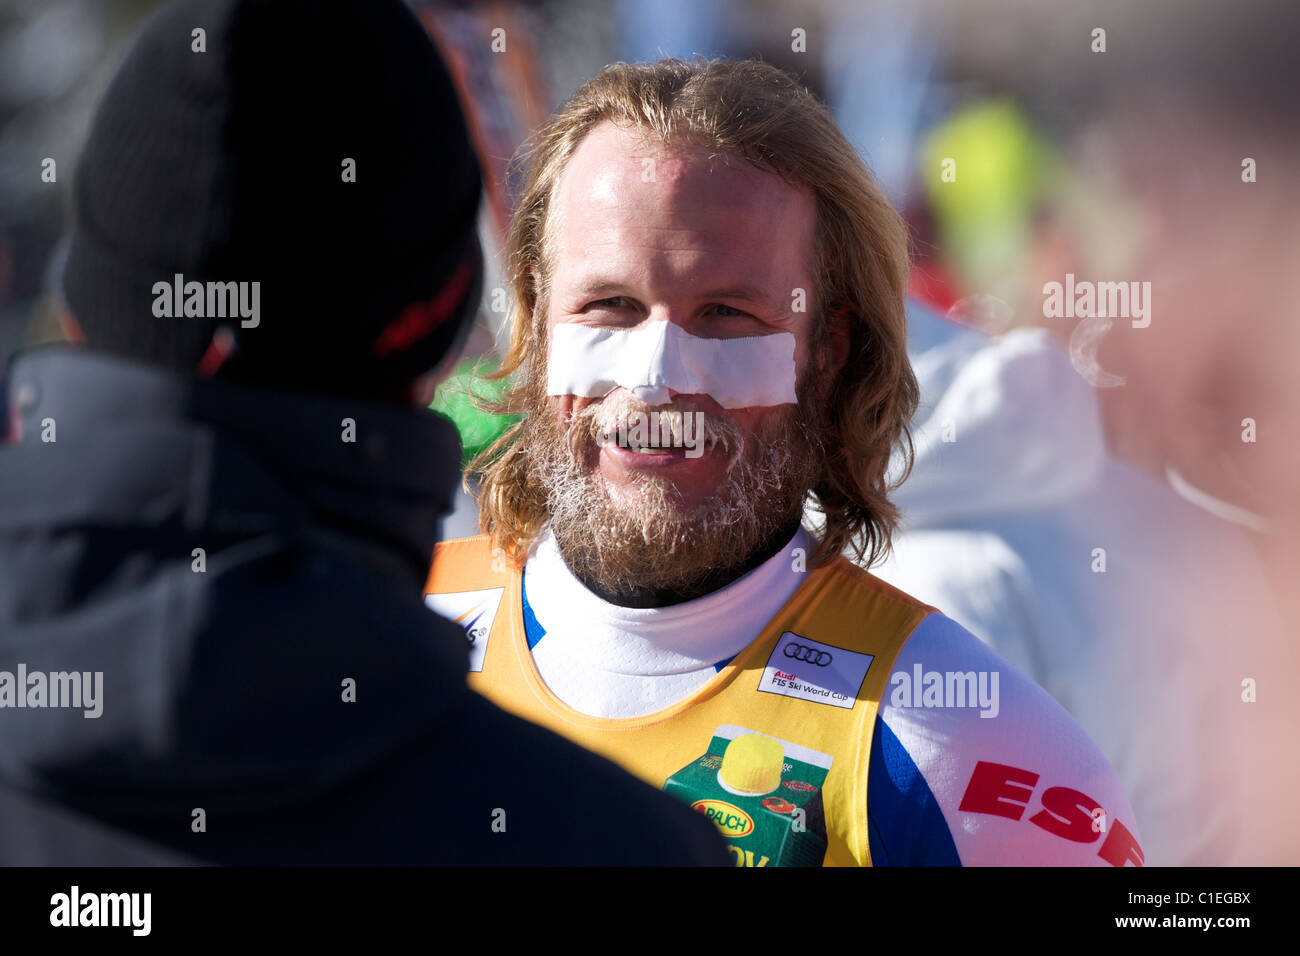 Julien Lizeroux after finishing a downhill part of Super Combined in Beaver Creek - Stock Image